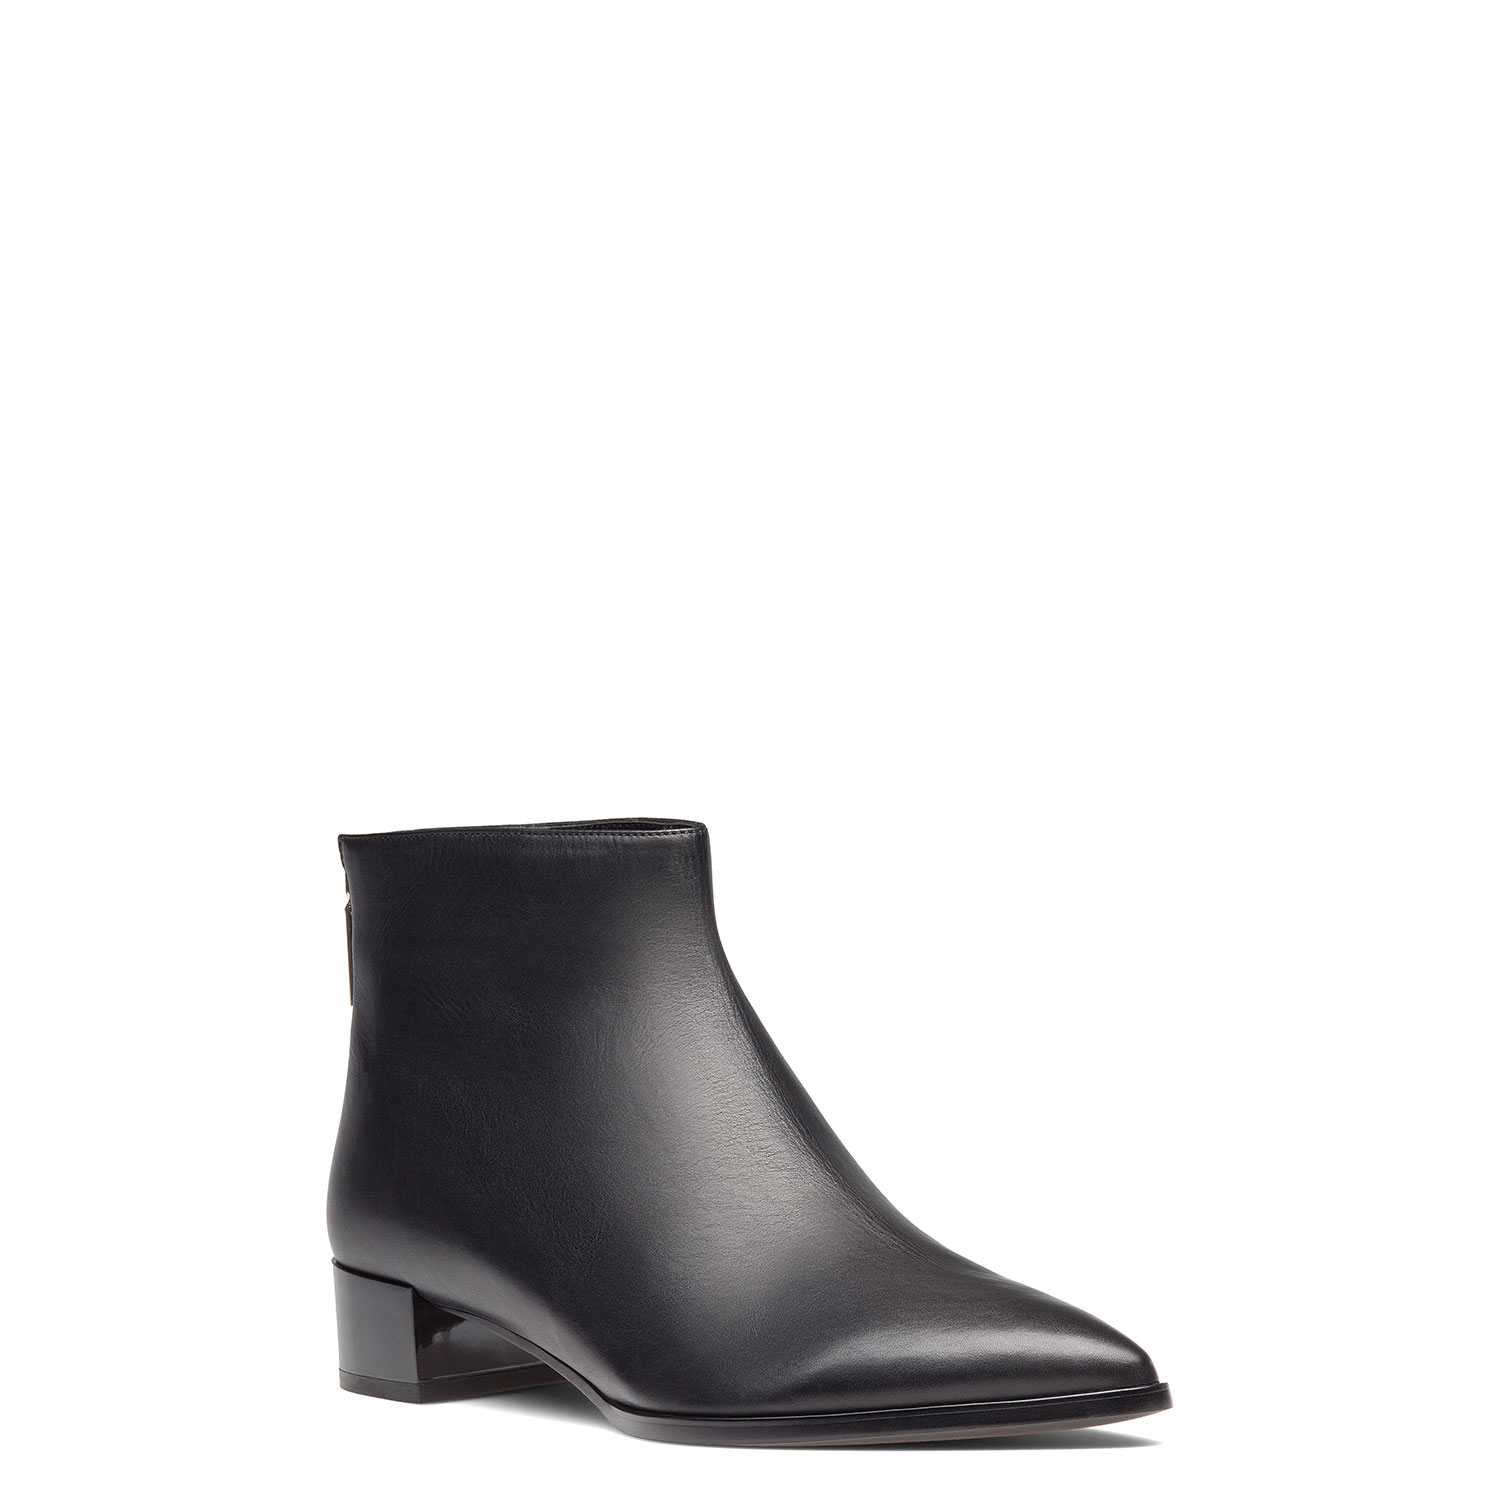 Women's ankle boots PAZOLINI FL-GIW6-1